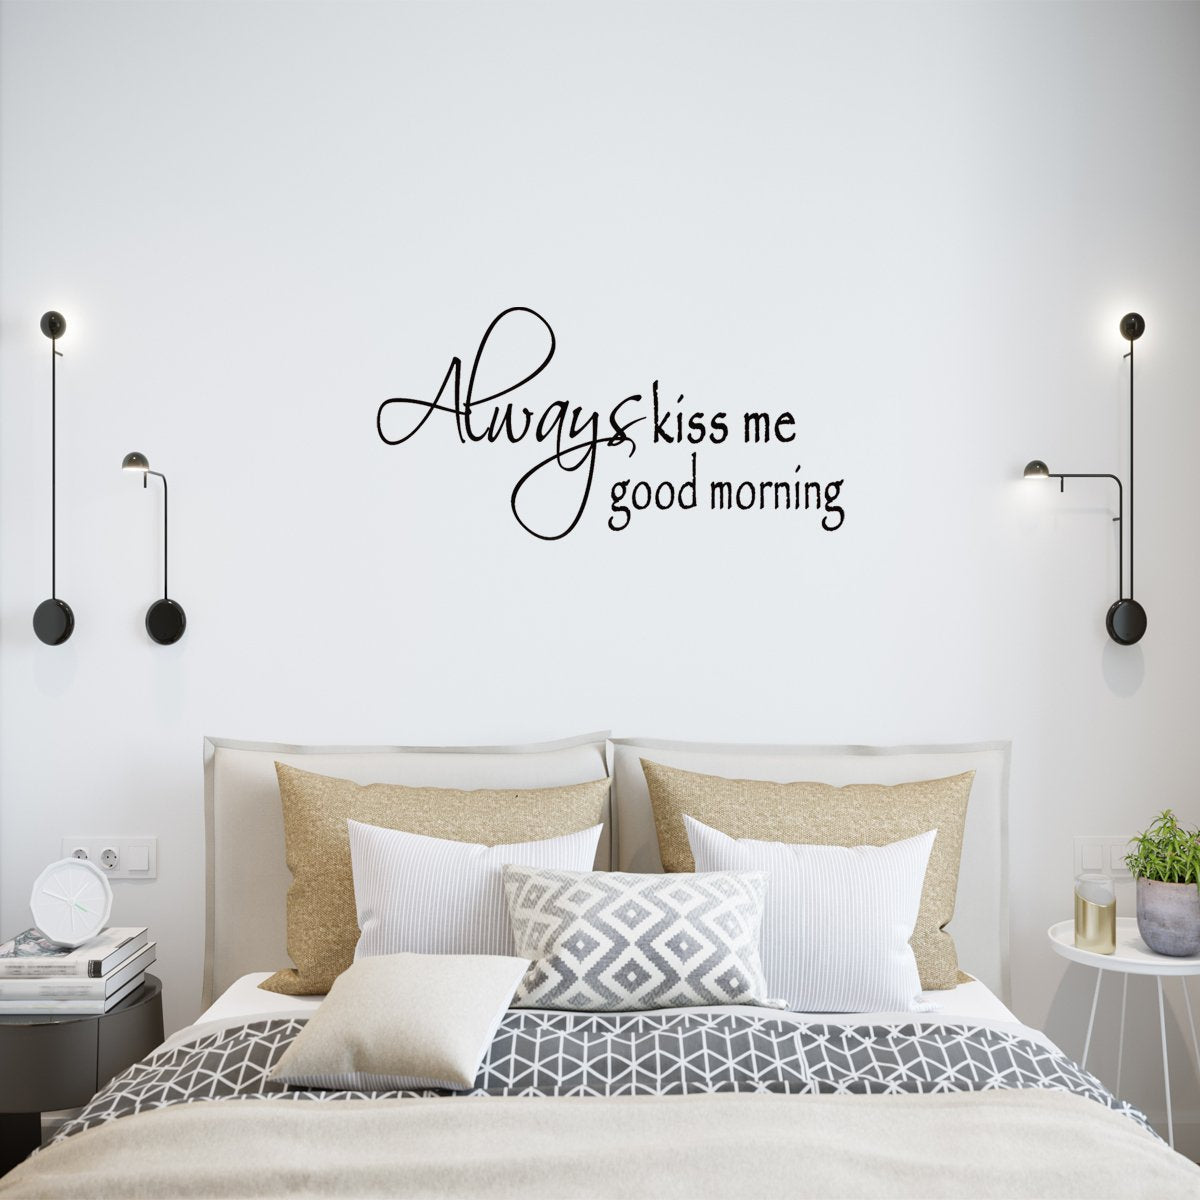 VWAQ Always Kiss Me Good Morning Love Wall Quotes Decals - VWAQ Vinyl Wall Art Quotes and Prints